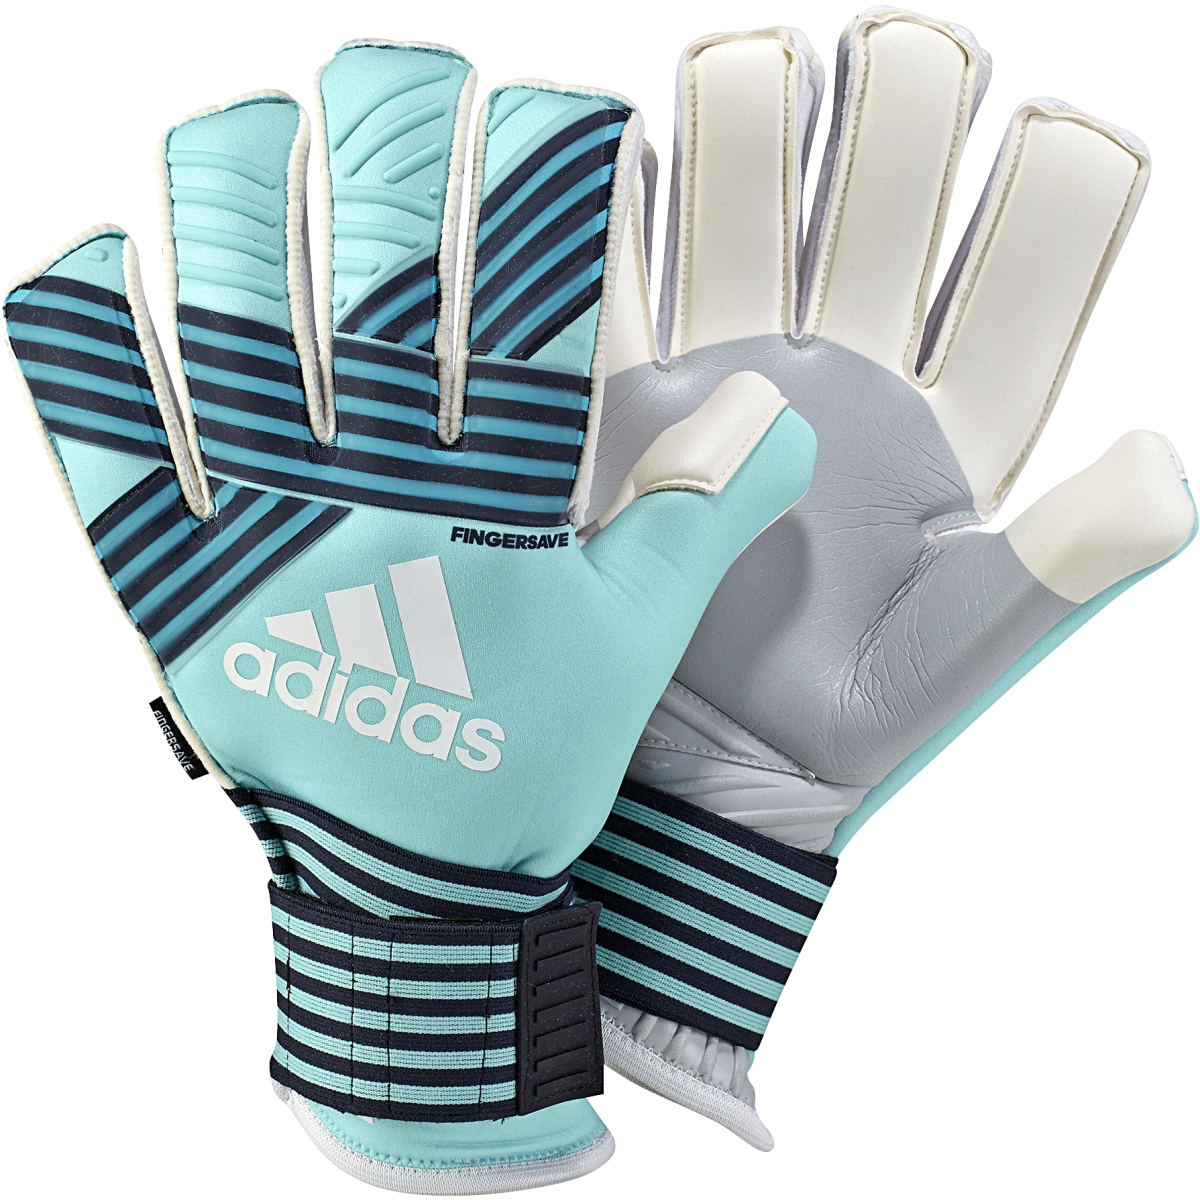 watch de00f 83096 adidas Ace Trans Fingersave Pro GK Glove - Aqua Blue ...